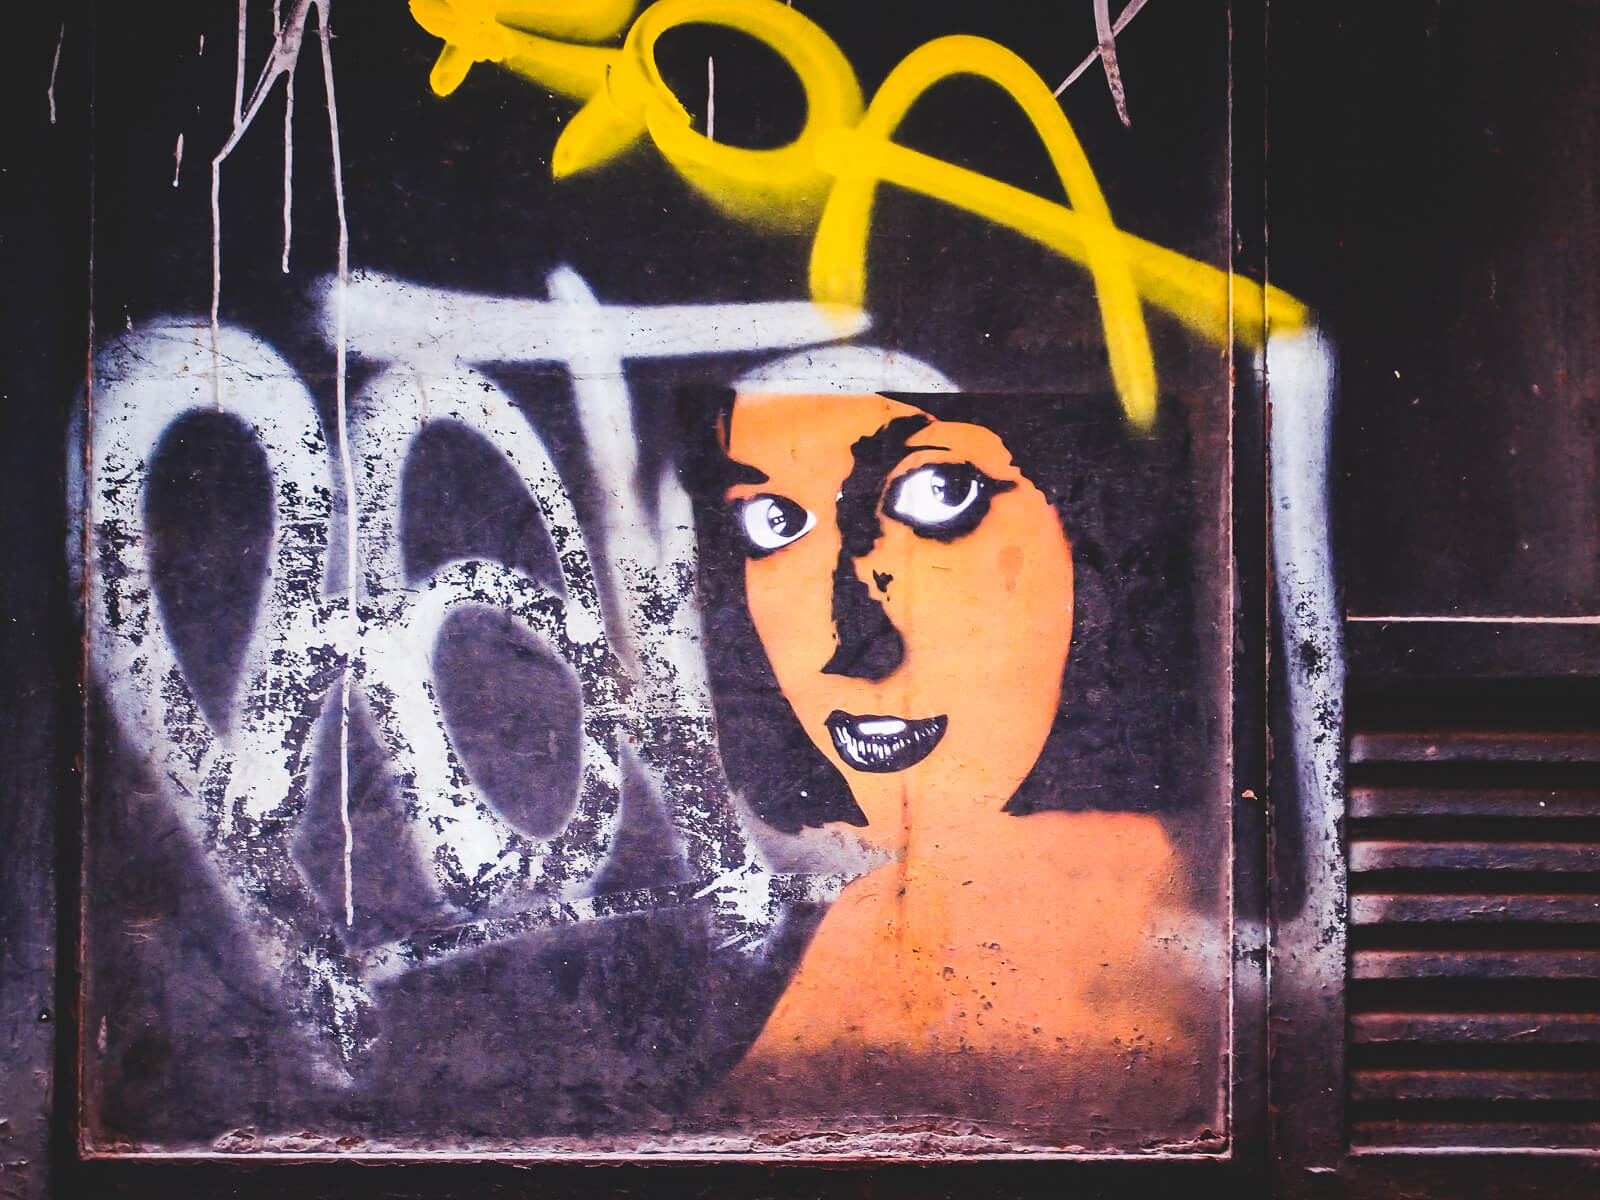 Barcelona Street Photography, orange face woman, street art stencil